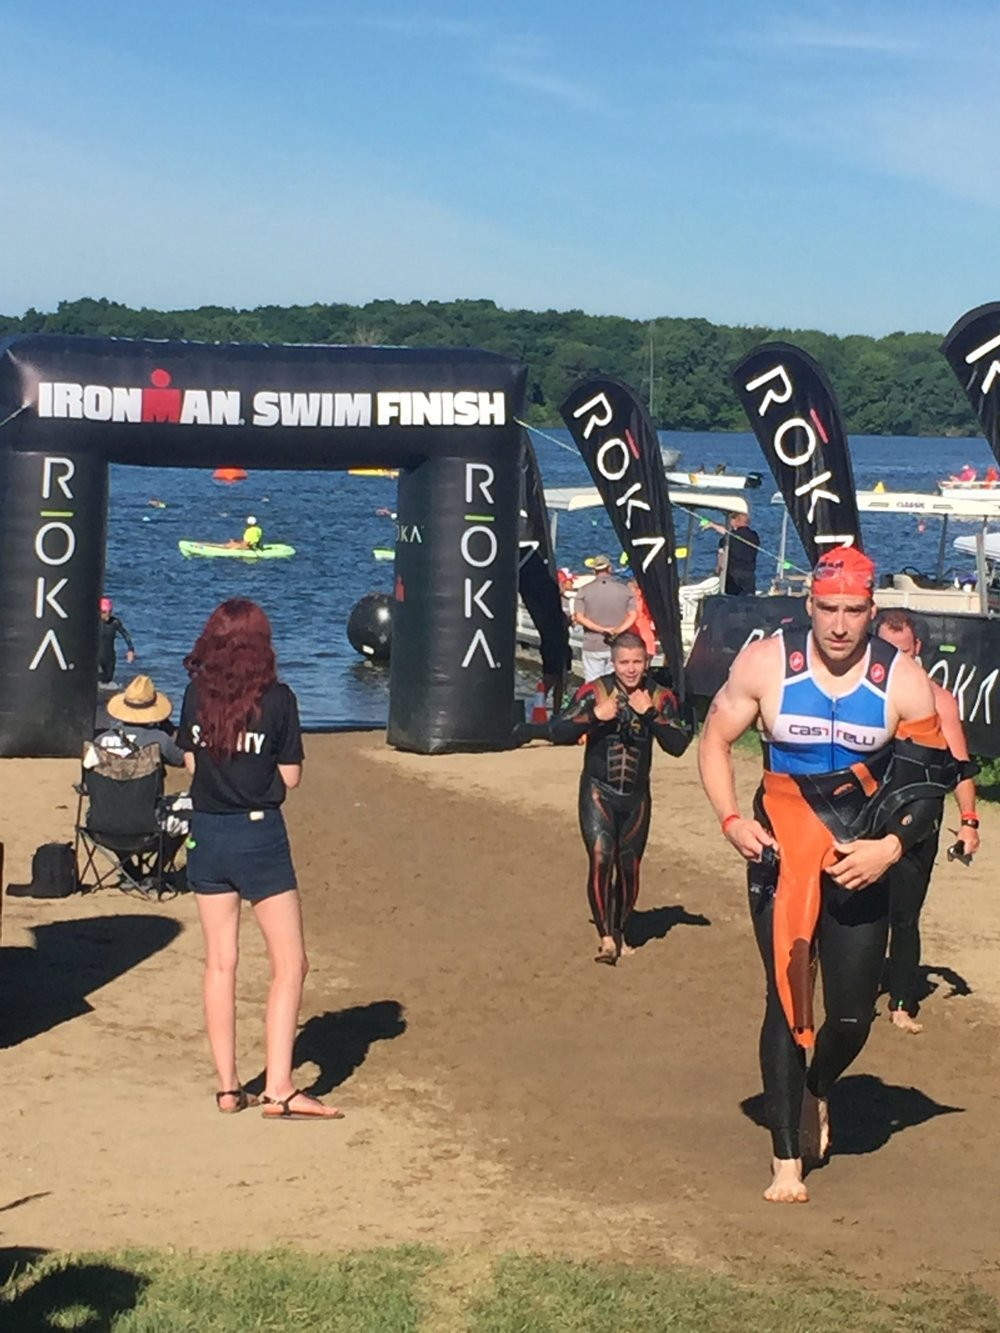 Jason competing in the swim portion of his first Iron Man competition